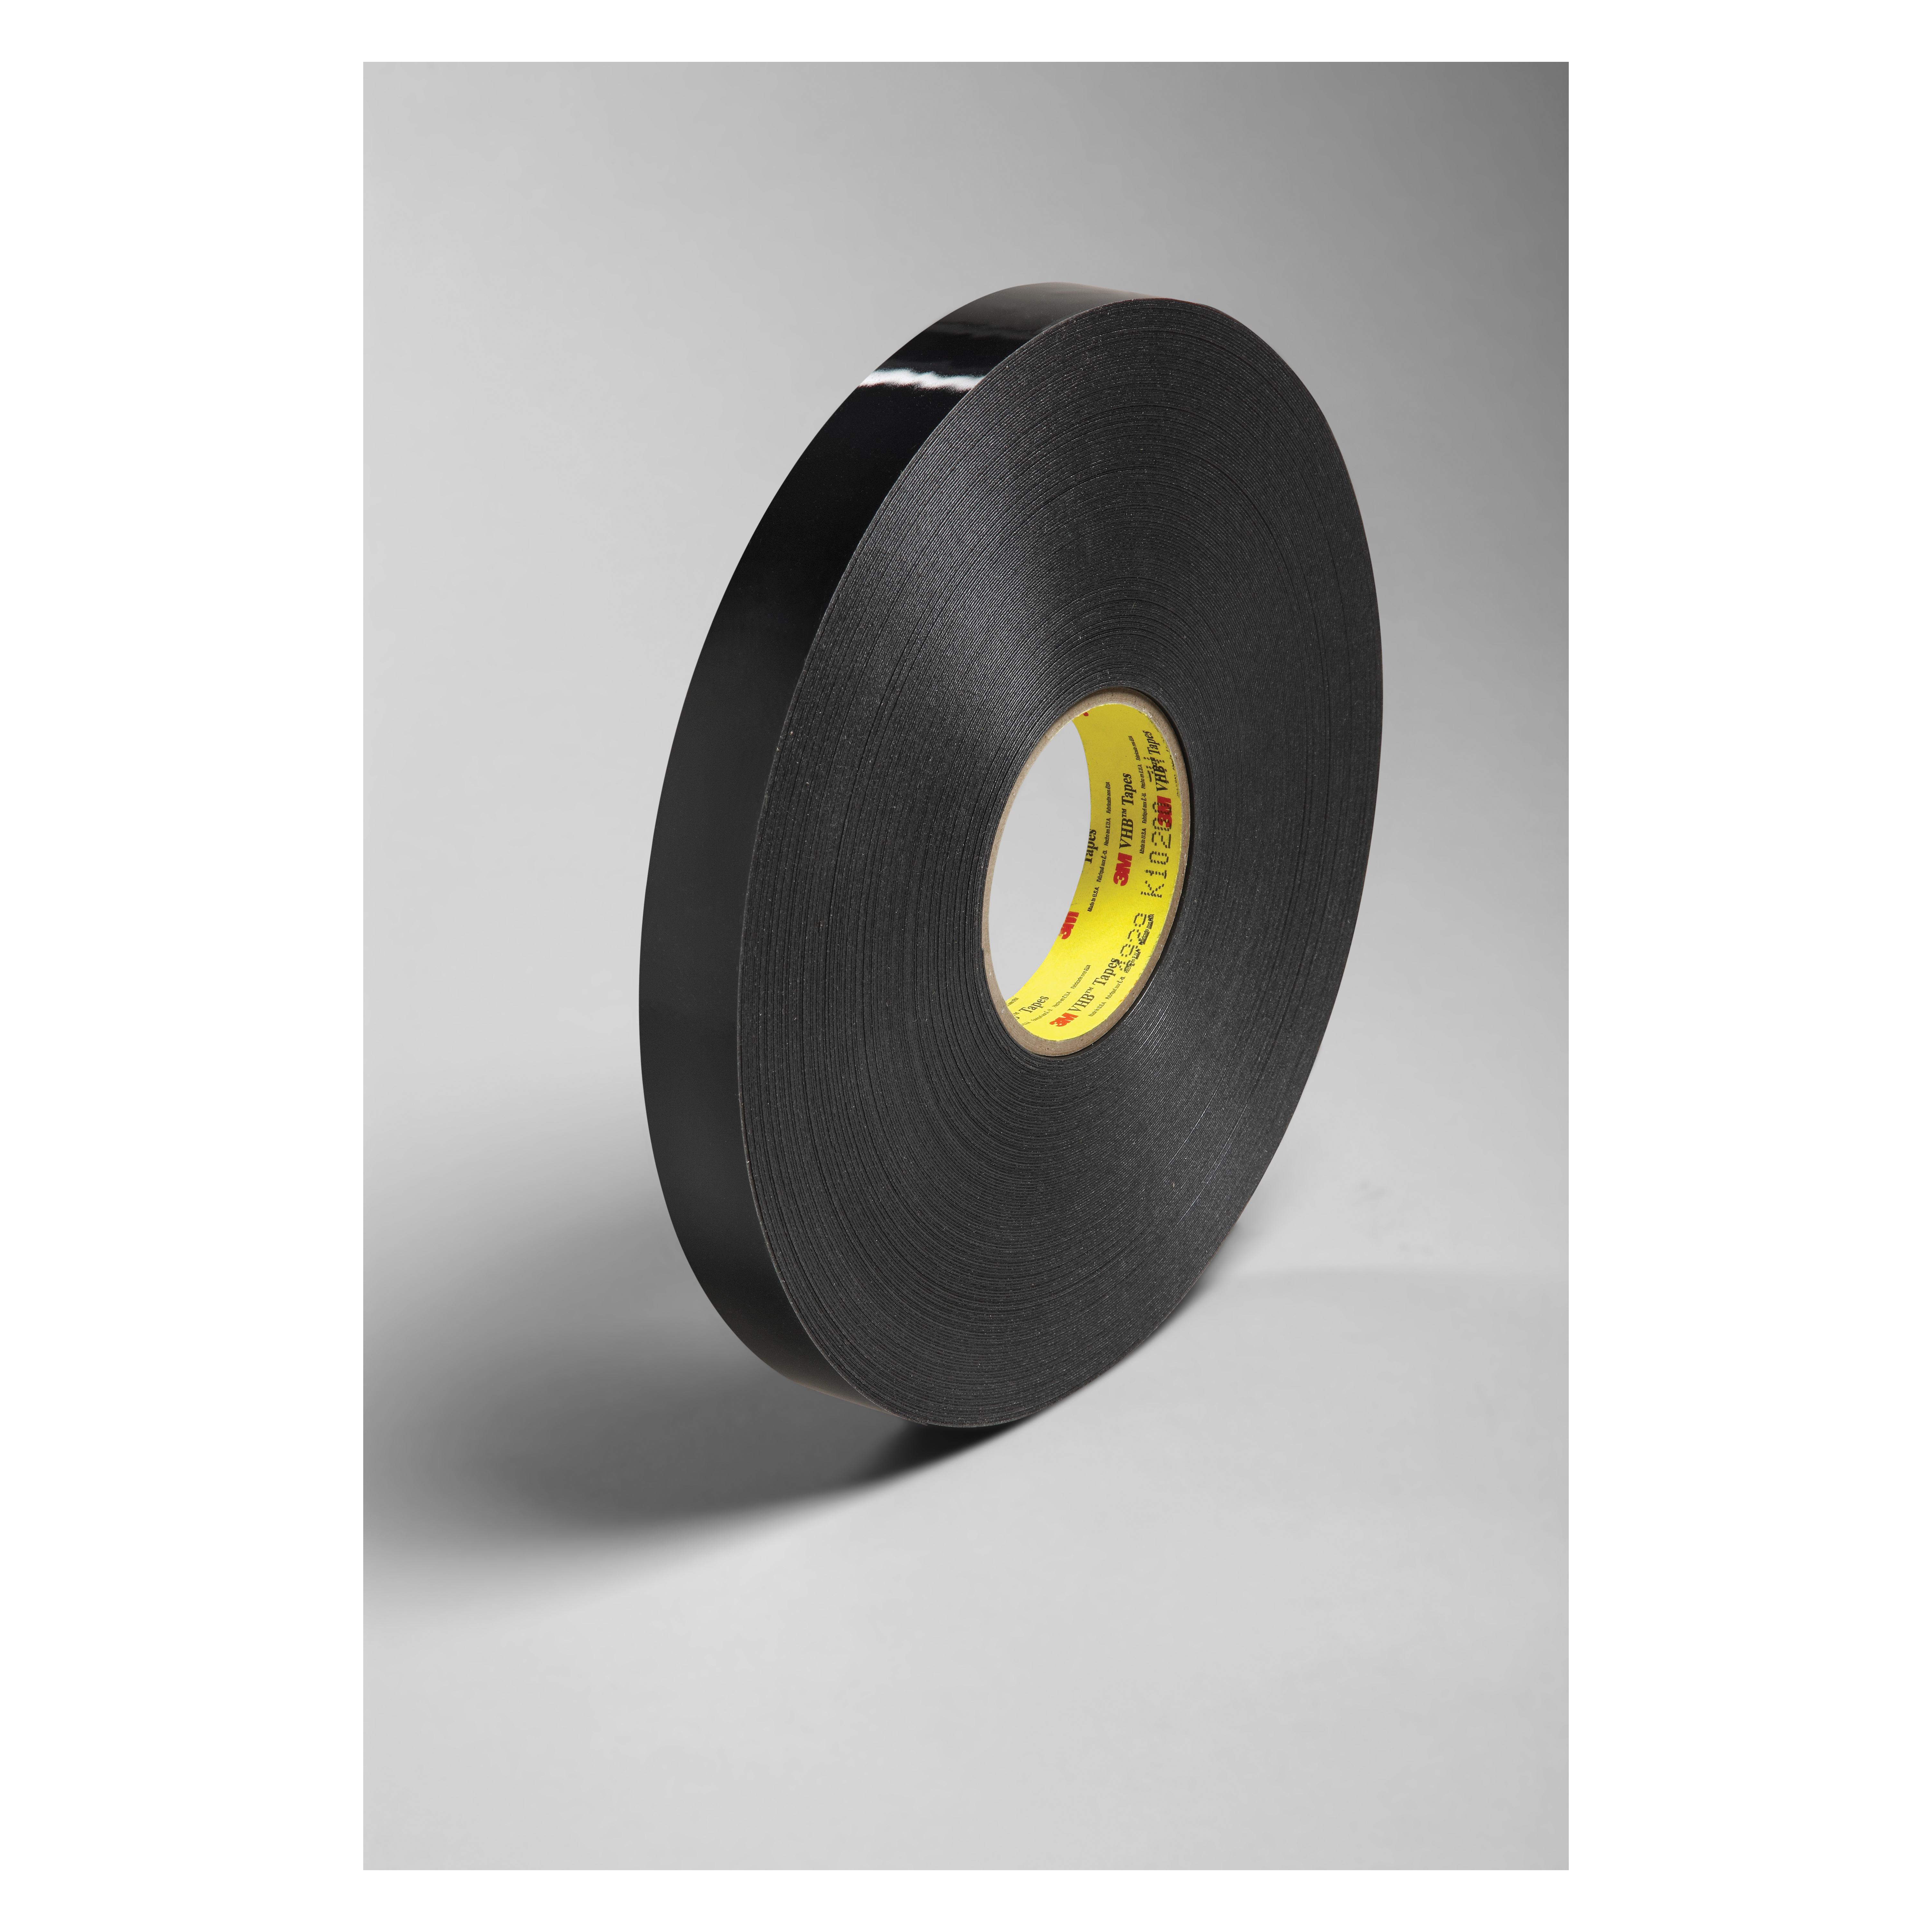 3M™ VHB™ 021200-64610 Pressure Sensitive Double Sided Bonding Tape, 72 yd L x 1 in W, 0.025 in THK, General Purpose Acrylic Adhesive, Acrylic Foam Backing, Black